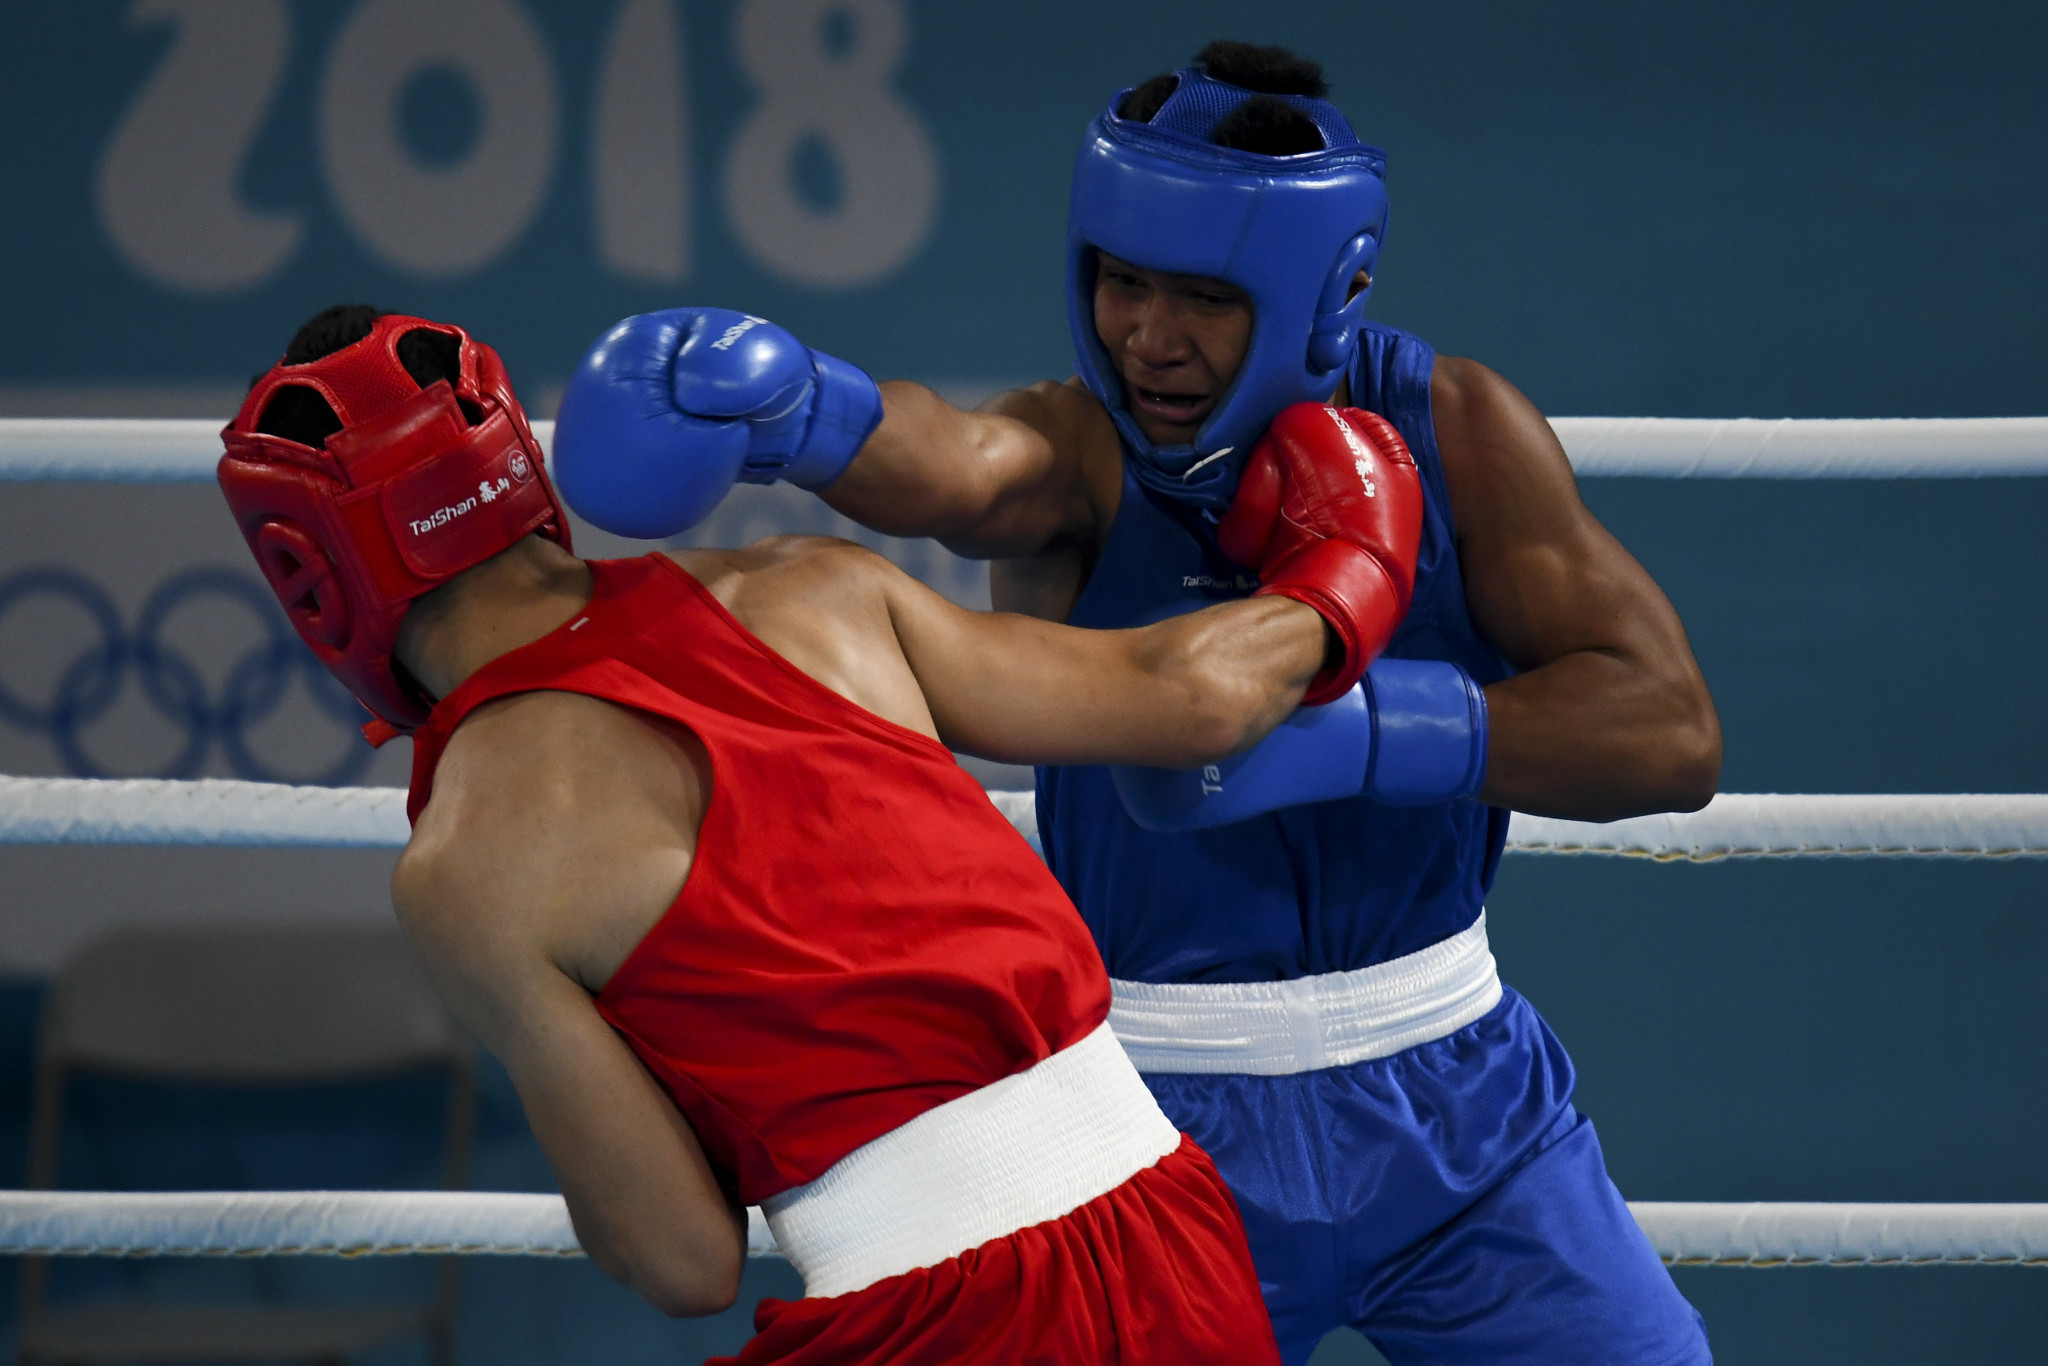 IOC sports director Kit McConnell has claimed there have not been any issues with the boxing event at Buenos Aires 2018 ©Getty Images